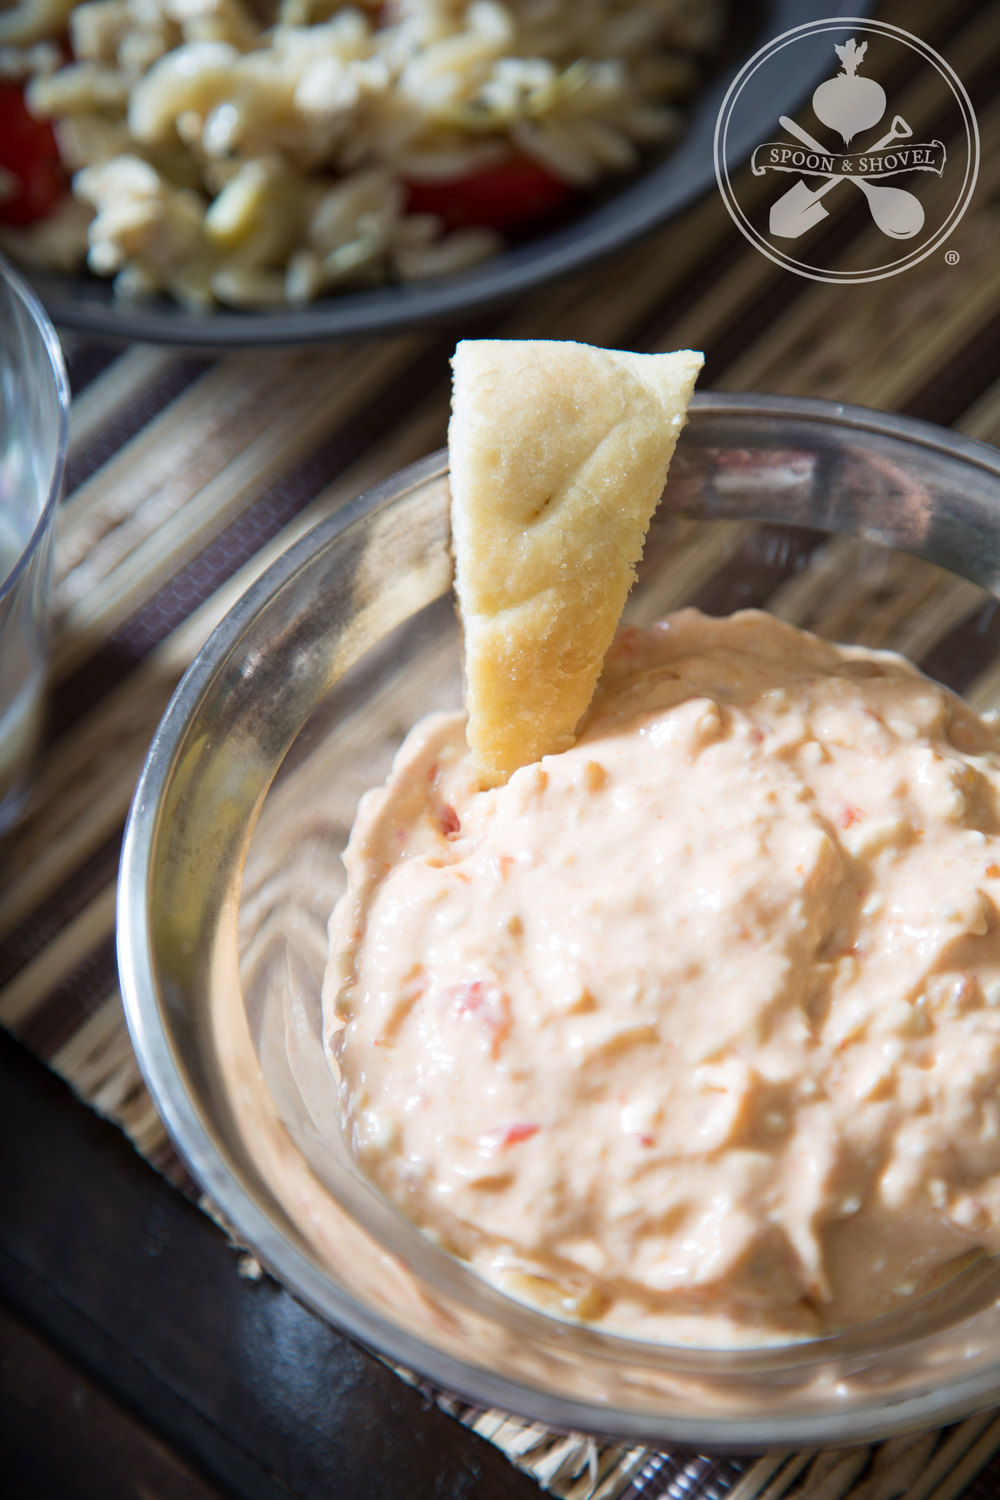 Sweet & hot pepper relish dip w/ Tofutti cream cheese